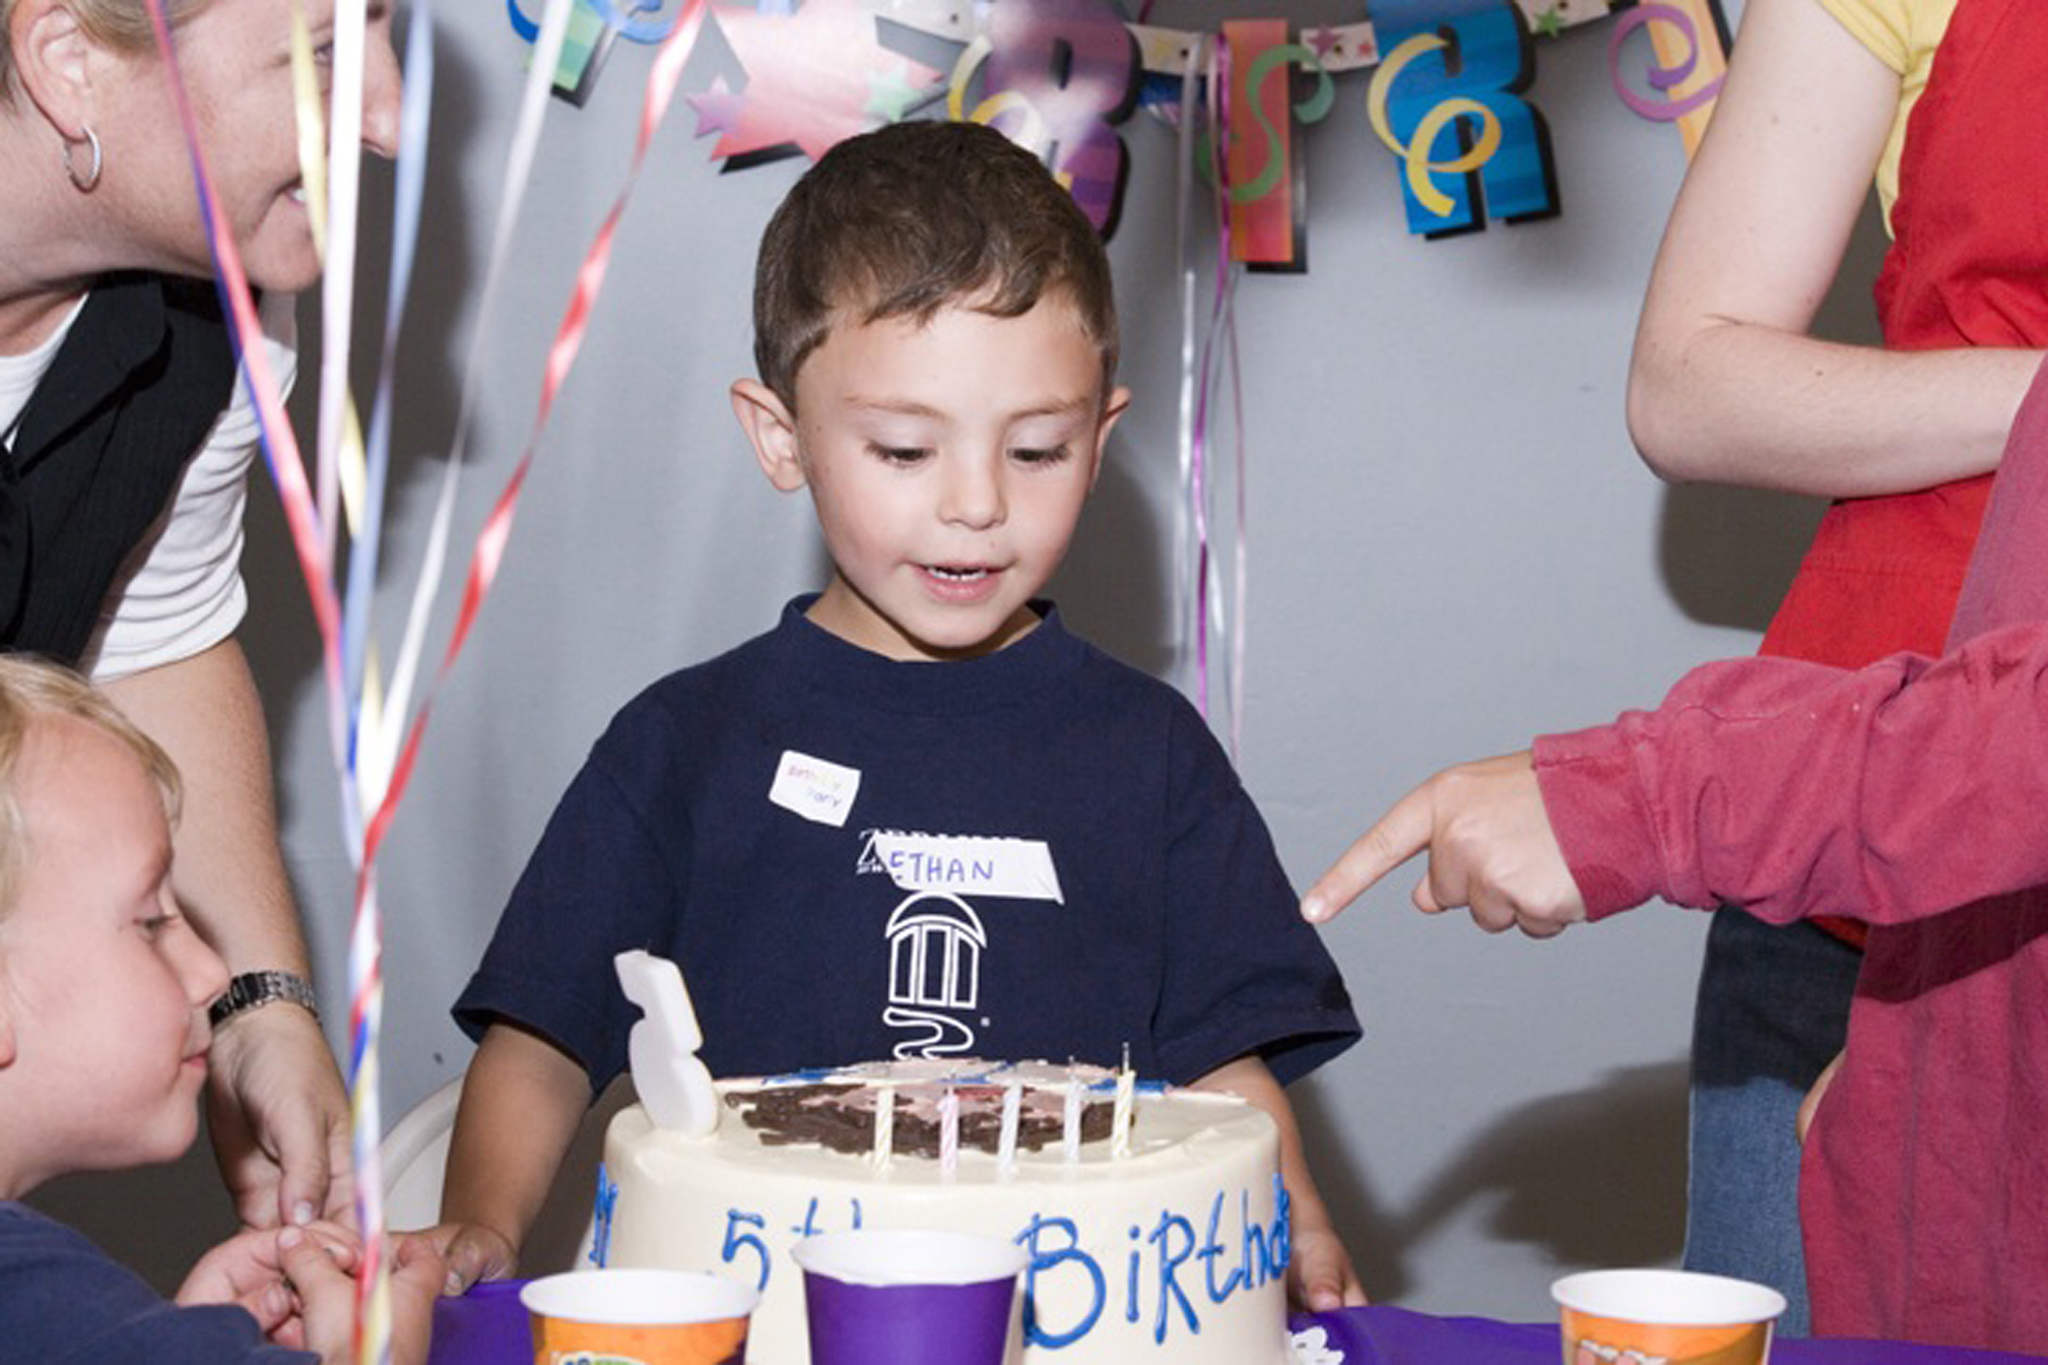 Children S Museum Of Manhattan Birthday Parties Things To Do In Upper West Side New York Kids